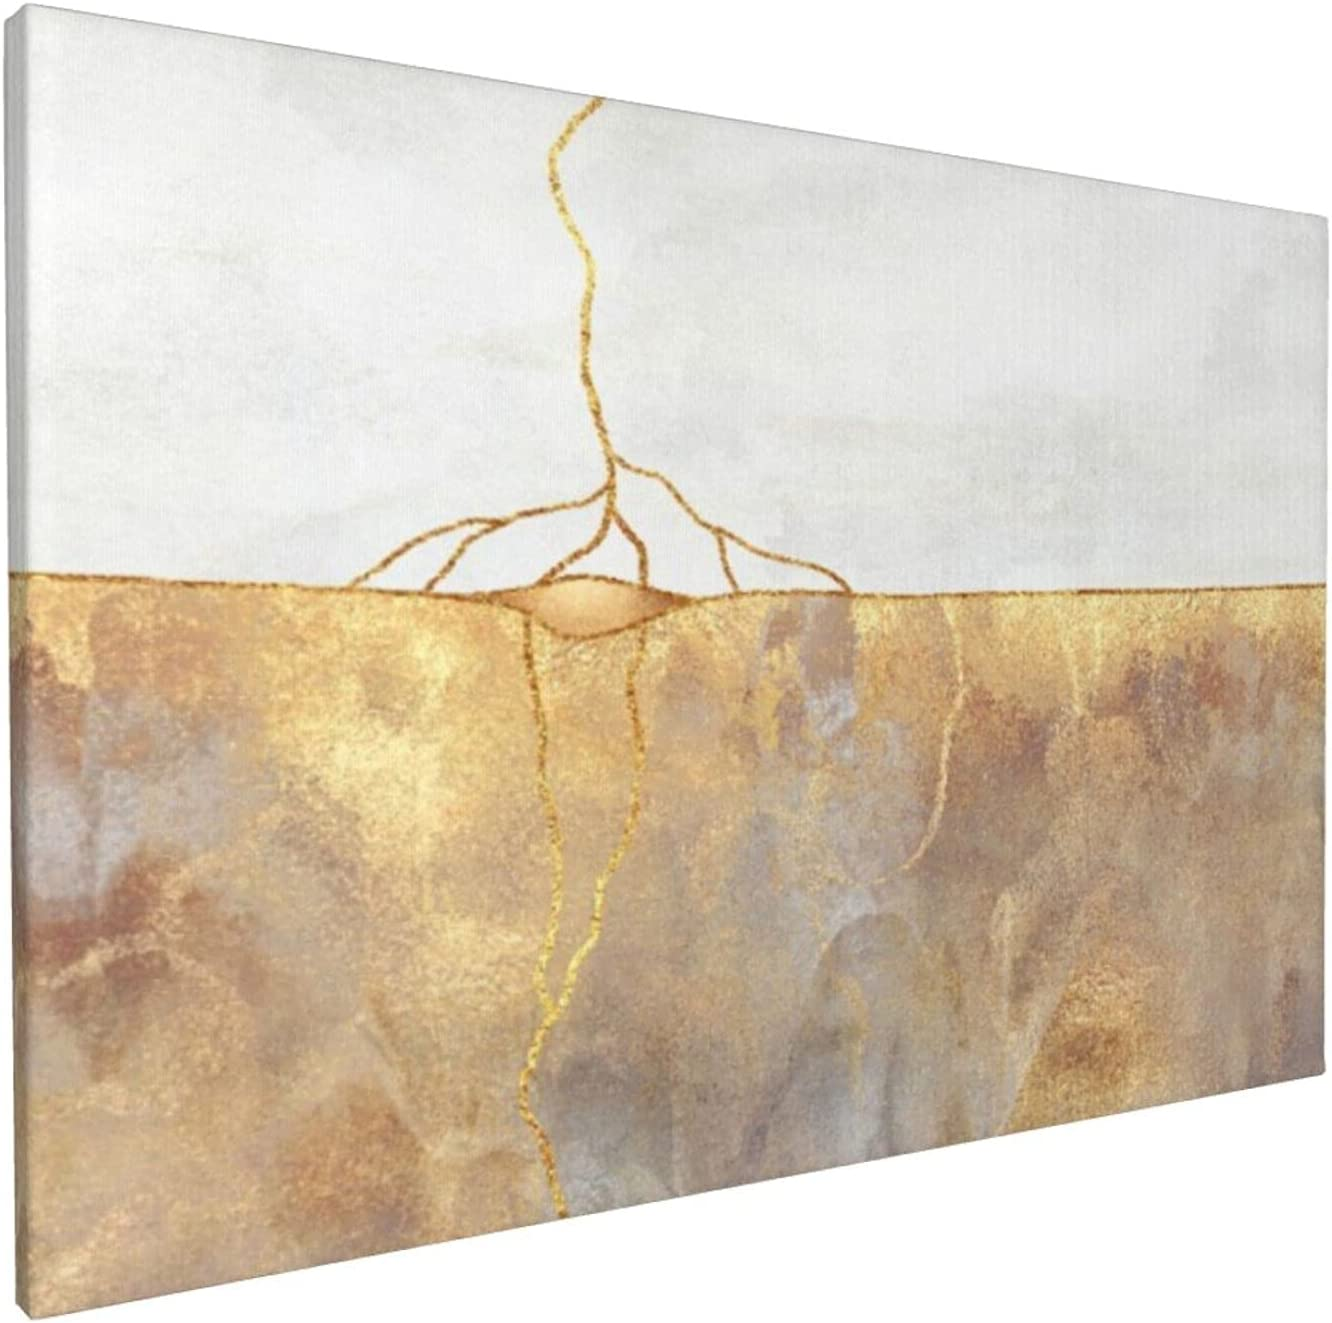 New life Canvas Wall Art Oil Selling rankings Painting Office Home Abstract Decor Gol Gold